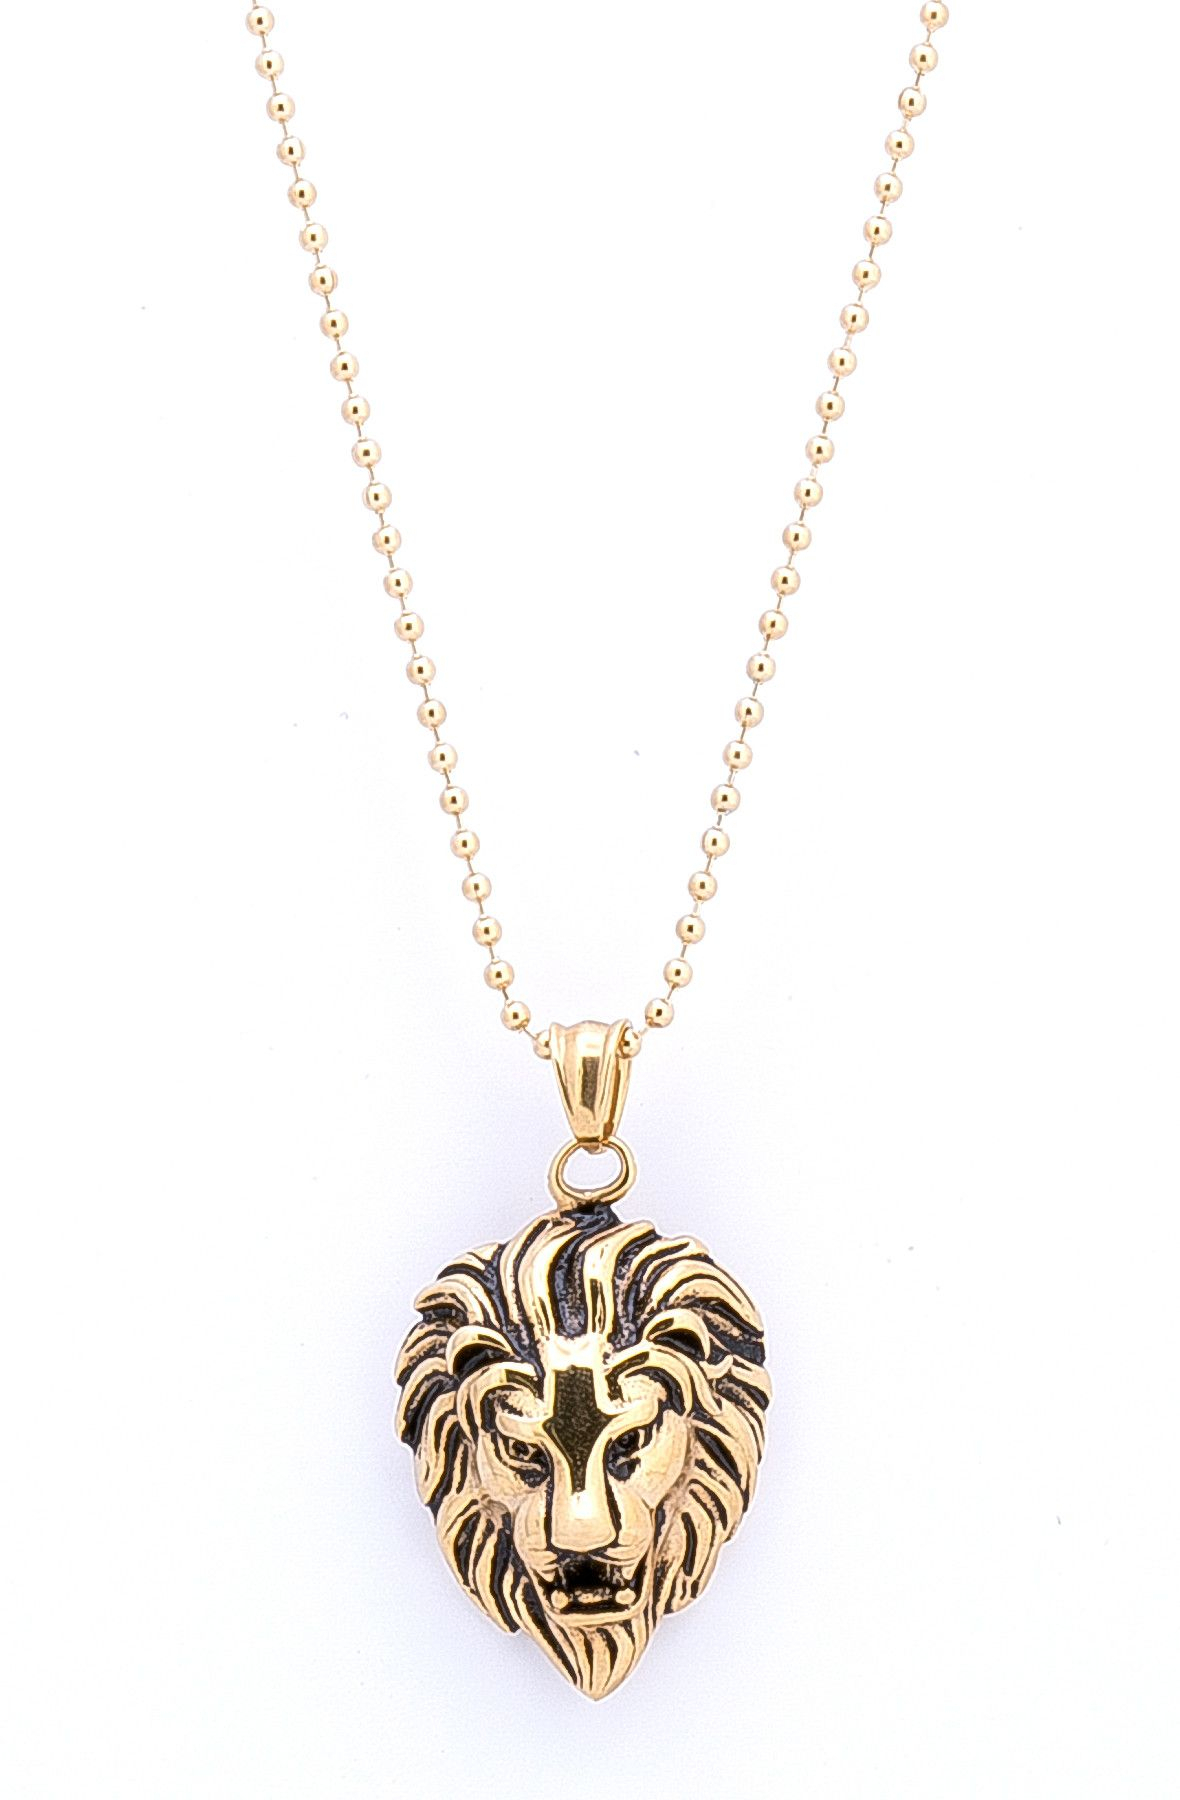 Golden Lion Head | Tag Twenty Two Necklaces | Jewelry, Golden Lions Throughout Most Recent Sparkling Lioness Heart Pendant Necklaces (View 8 of 25)